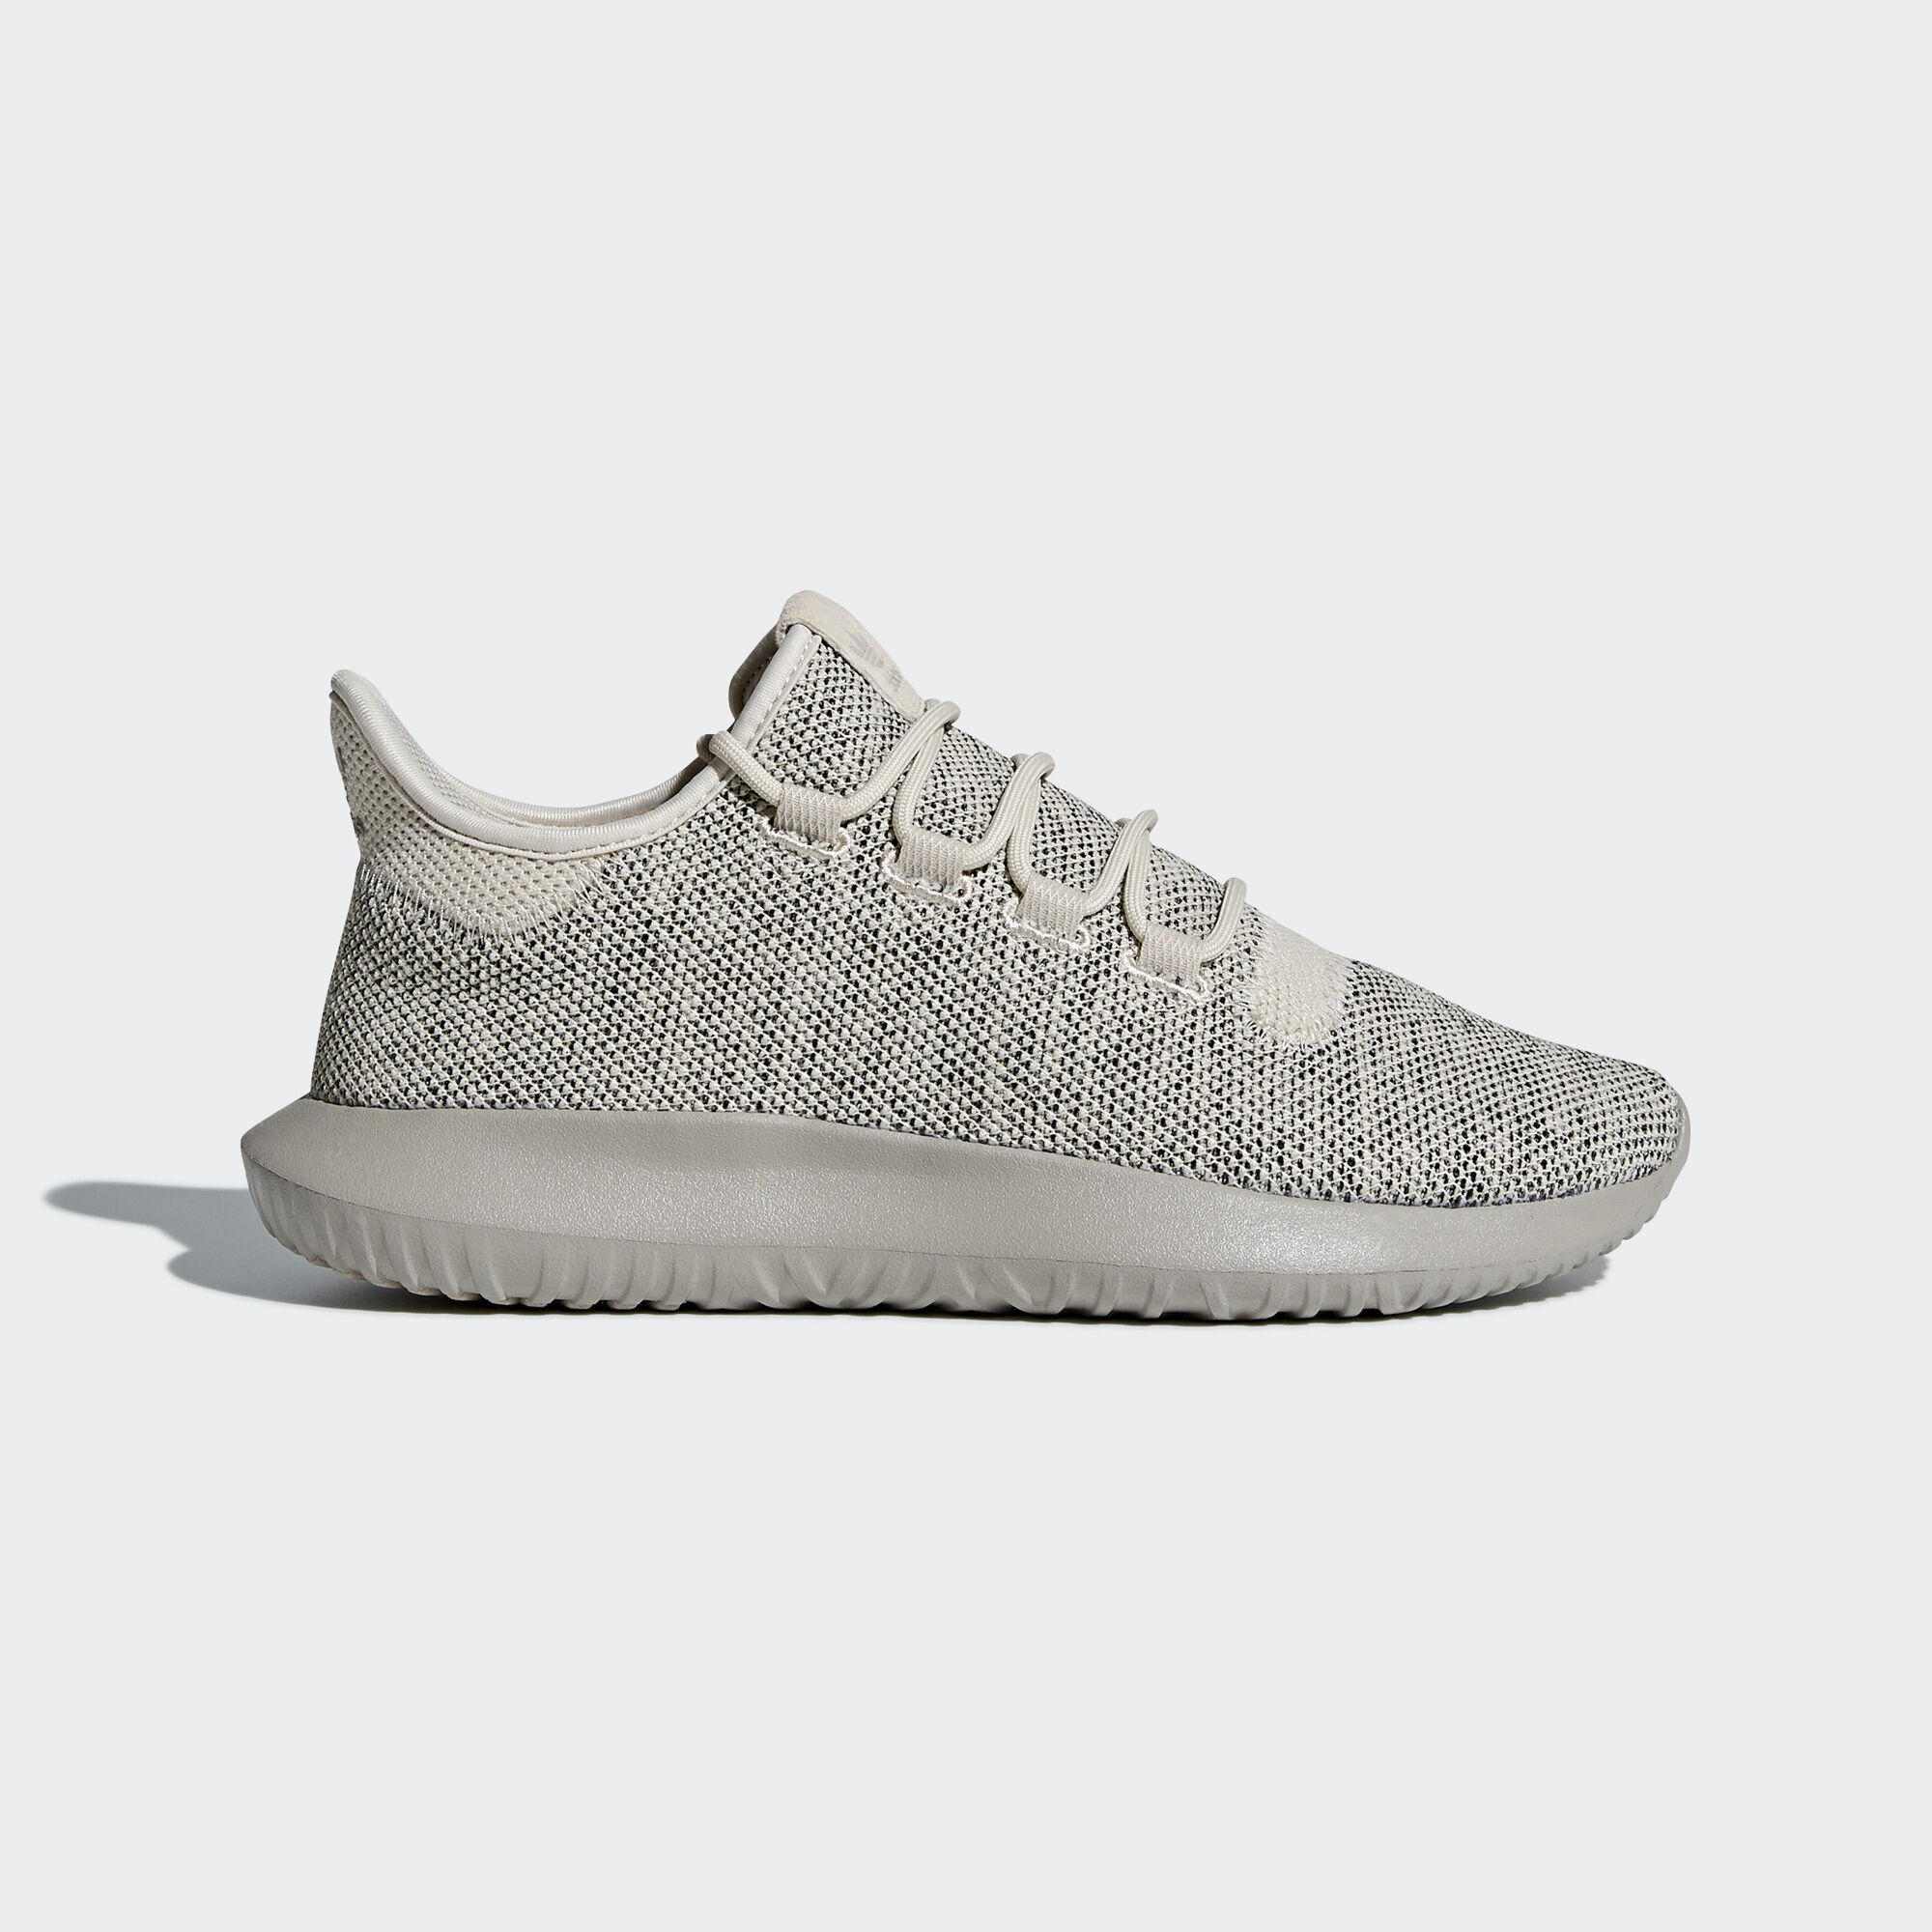 Adidas Tubular Shadow Brown Review